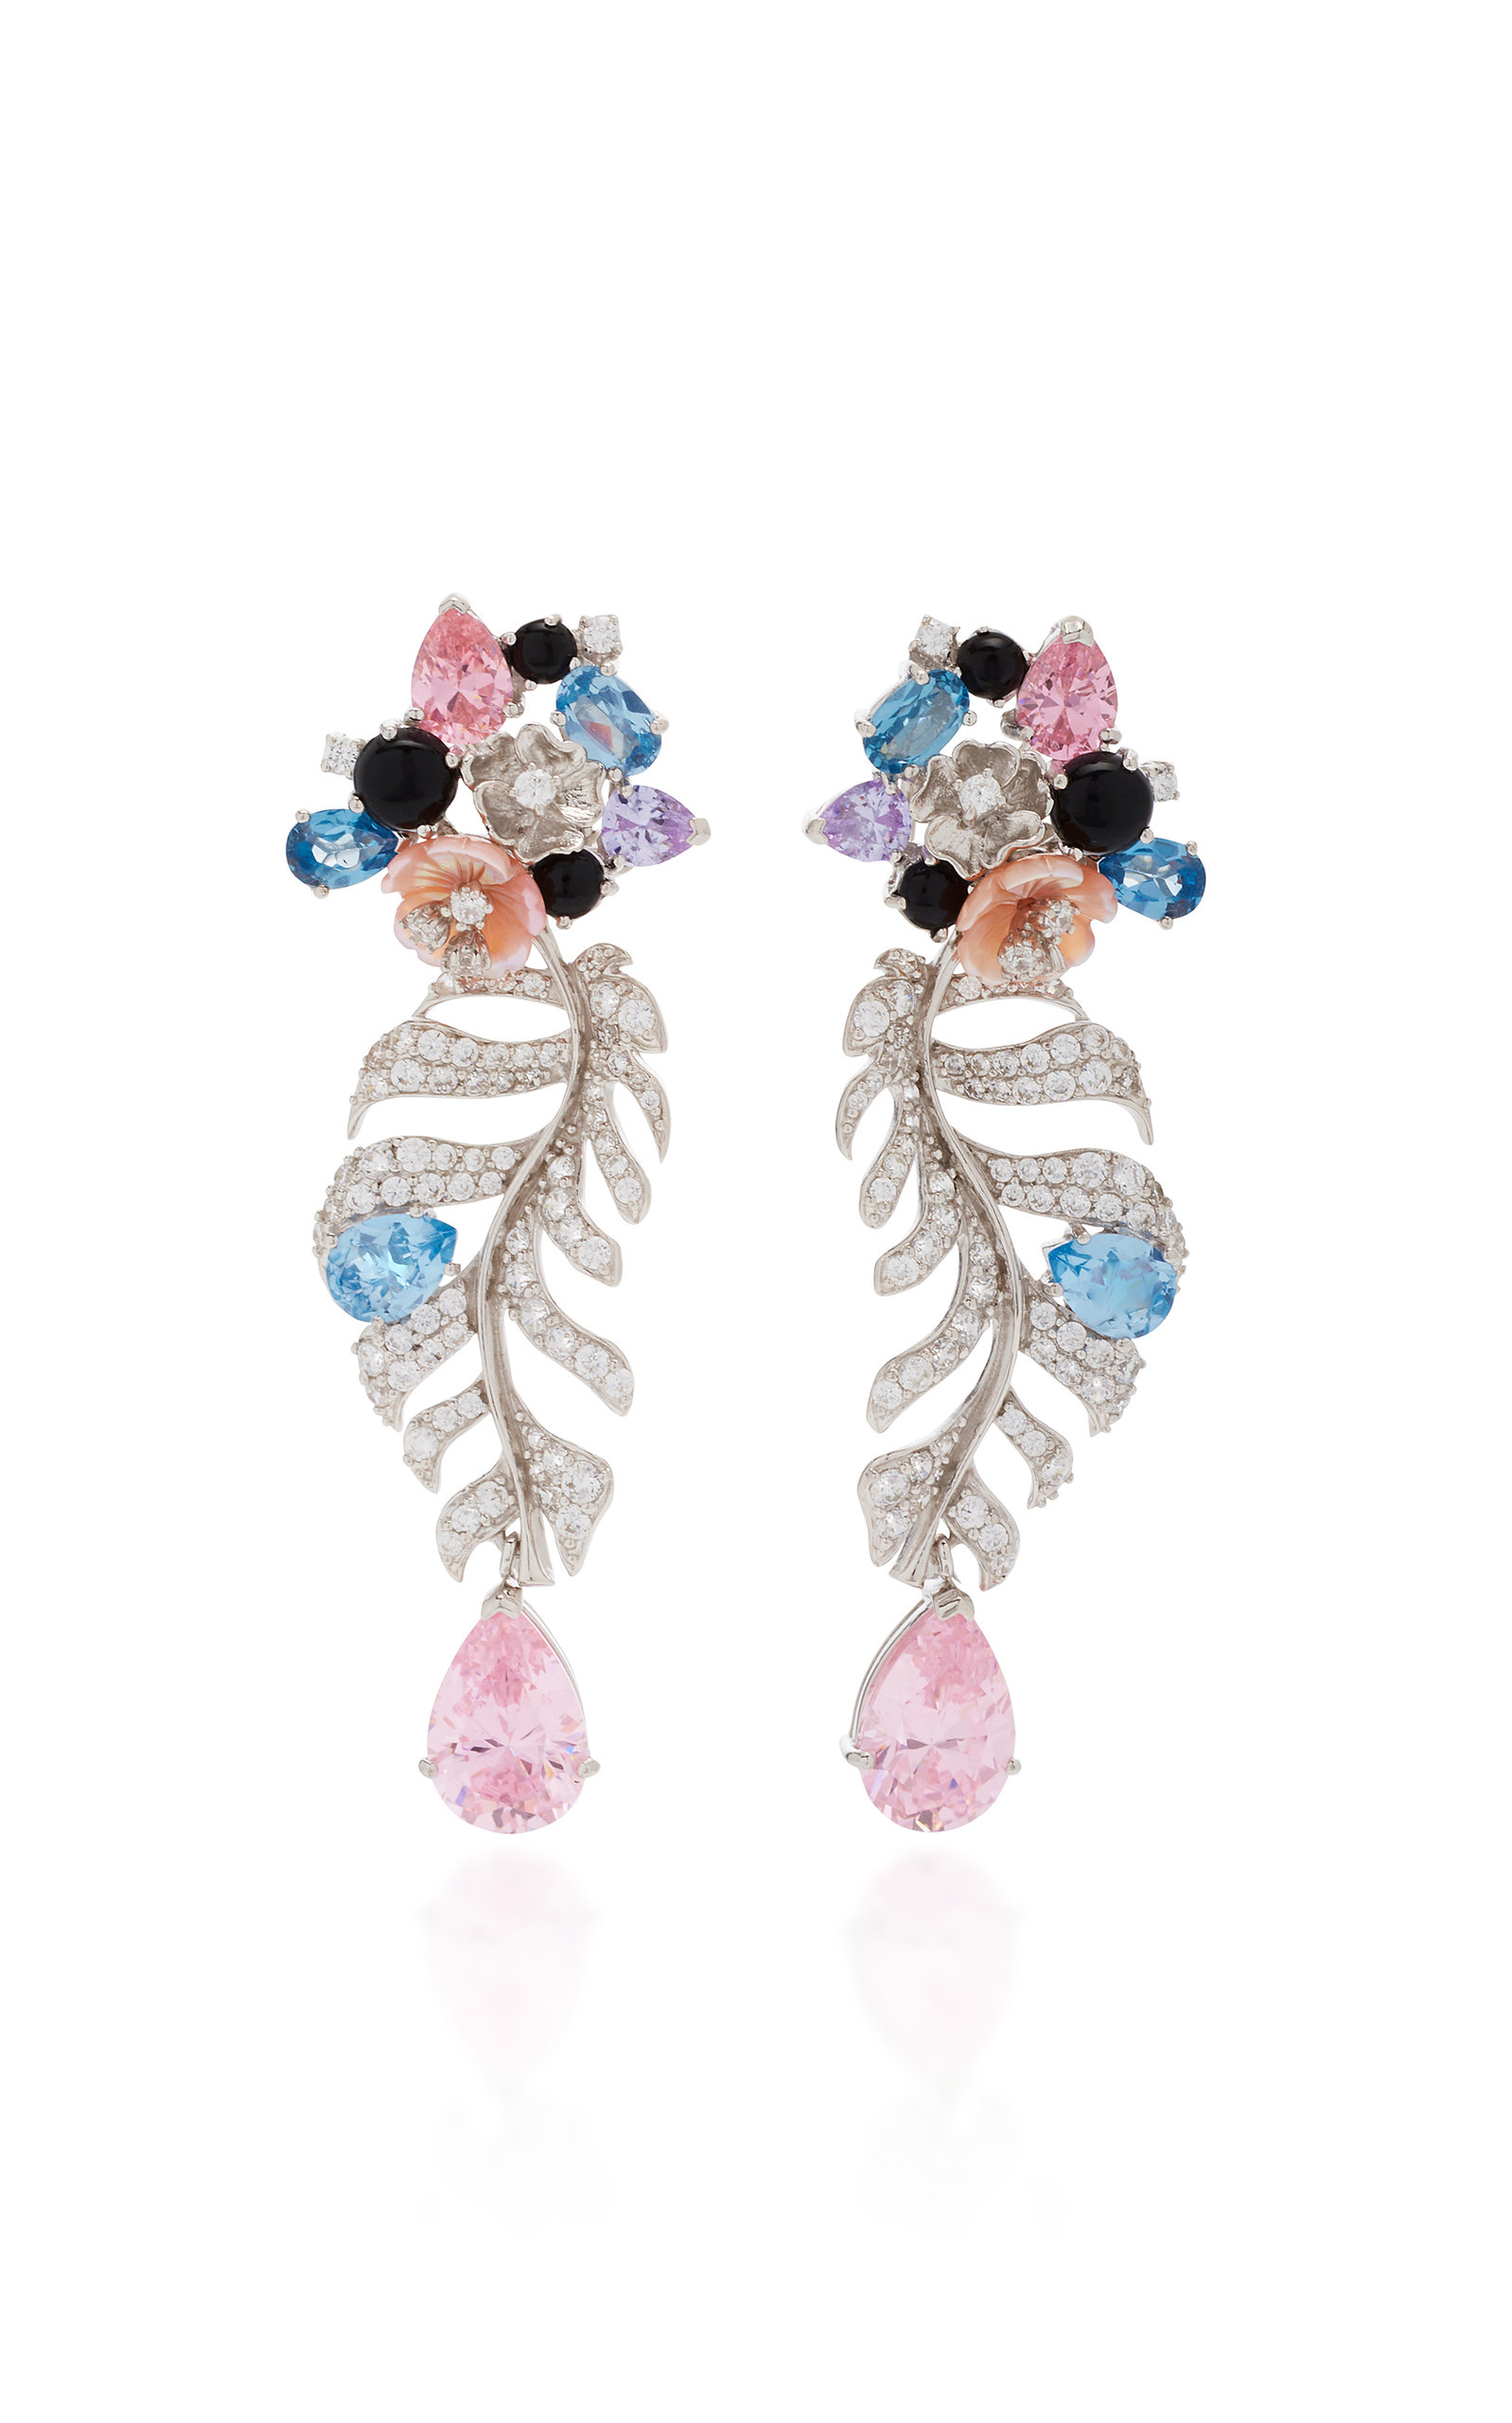 ANABELA CHAN M'O Exclusive Rose Quartz Palm Earrings in Silver